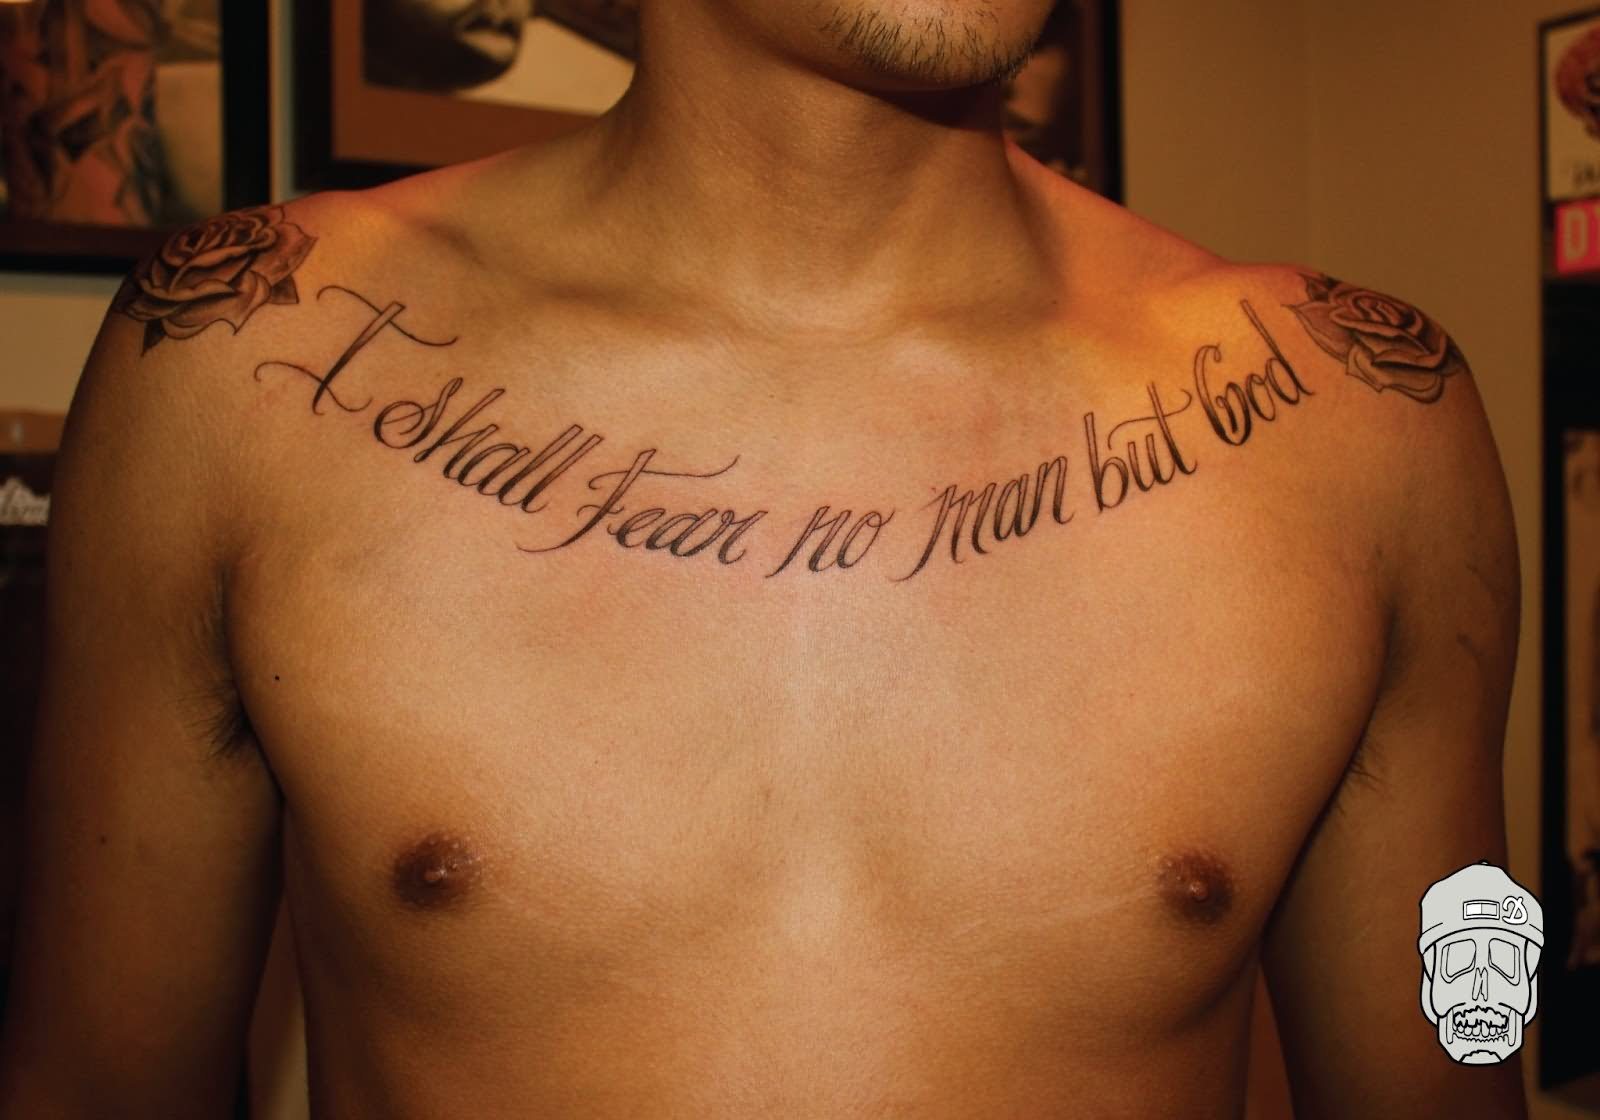 41 quotes tattoos on chest i shall fear no man but god quote tattoo on man chest altavistaventures Images